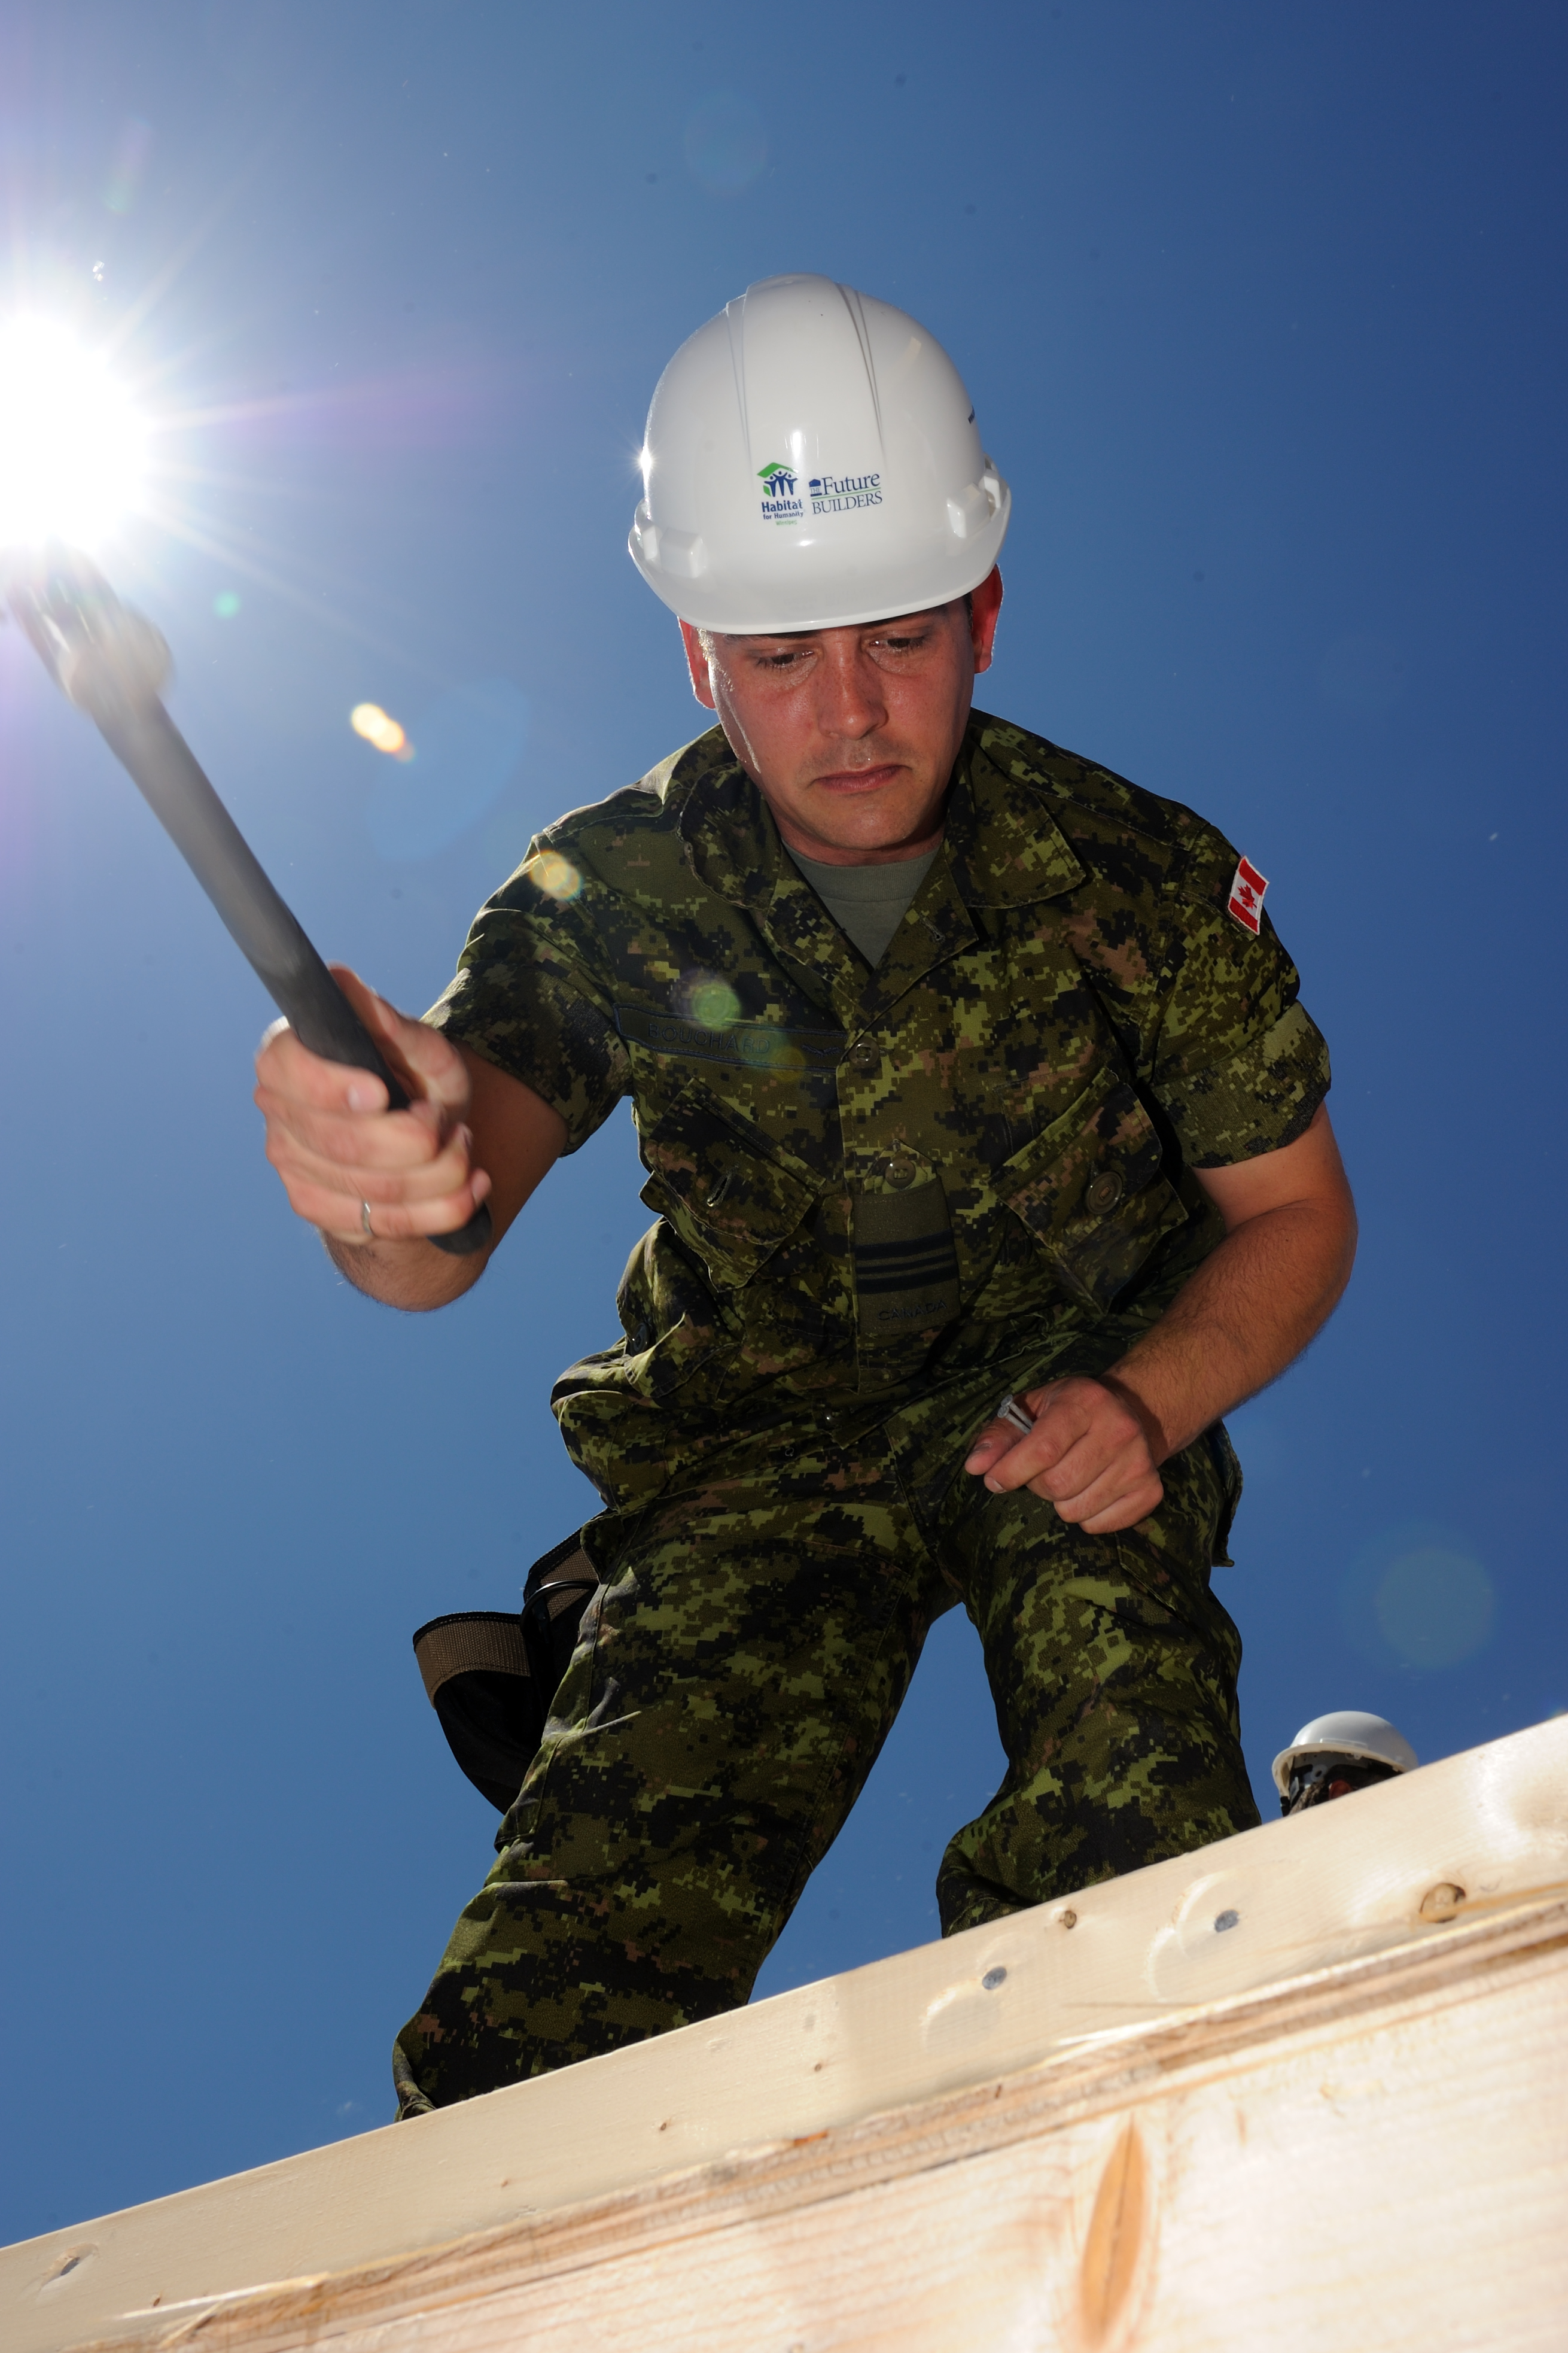 Major Benoit Bouchard, Aide-de-Camp to the Governor General, also took part in the construction.